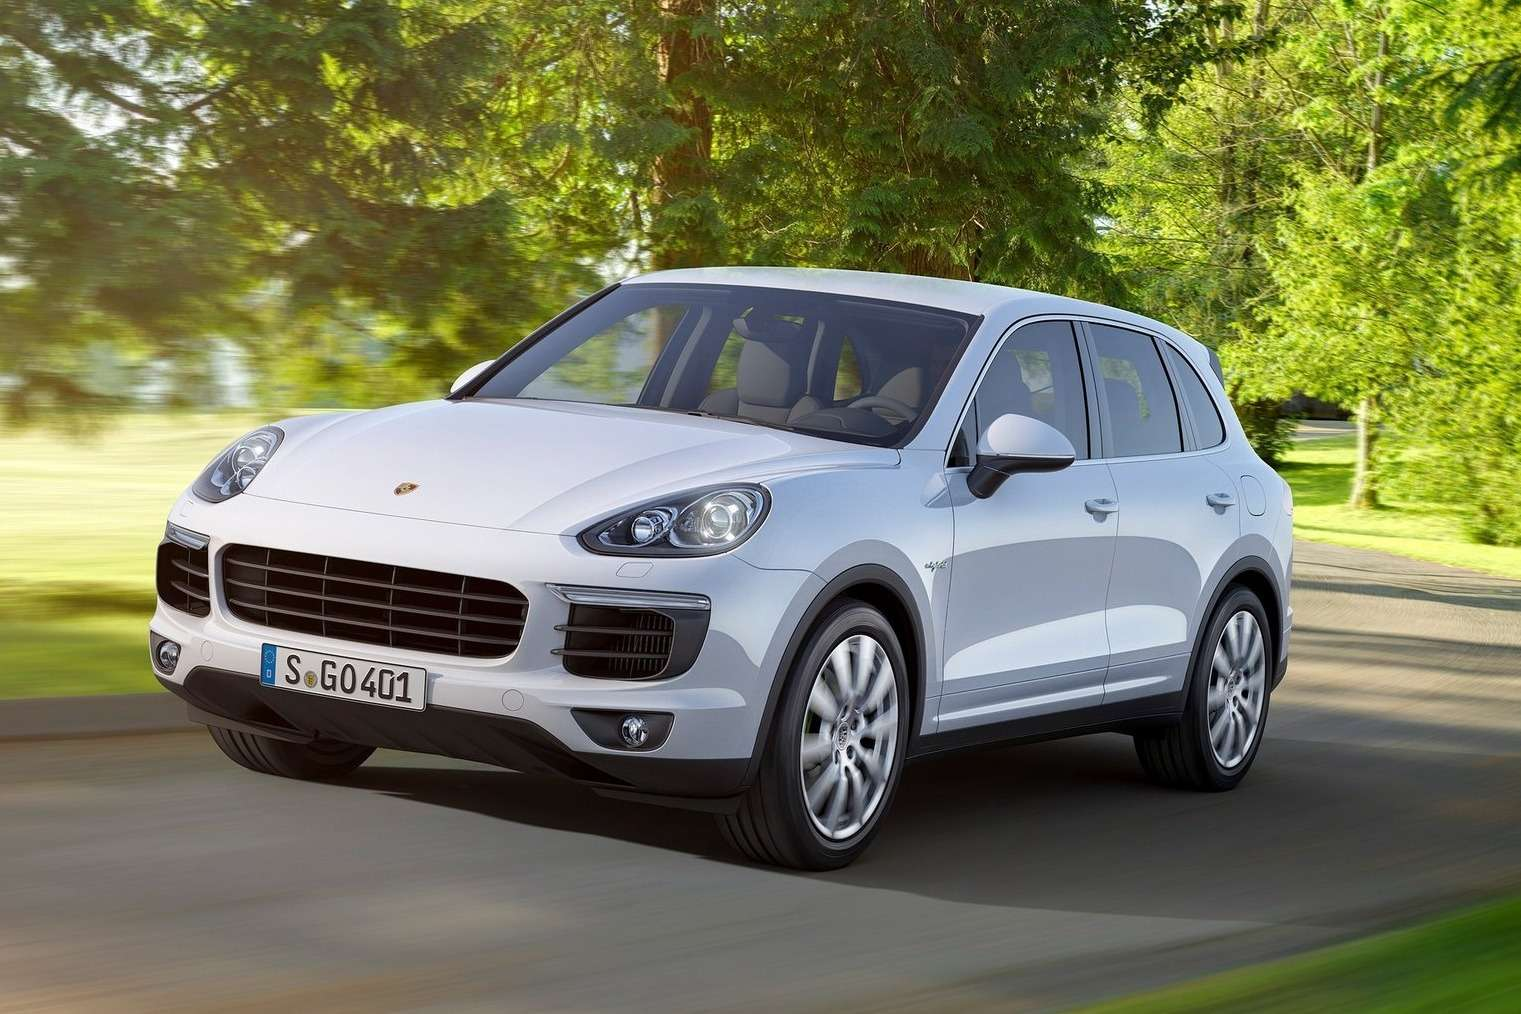 Porsche-Cayenne_2015_1600x1200_wallpaper_04